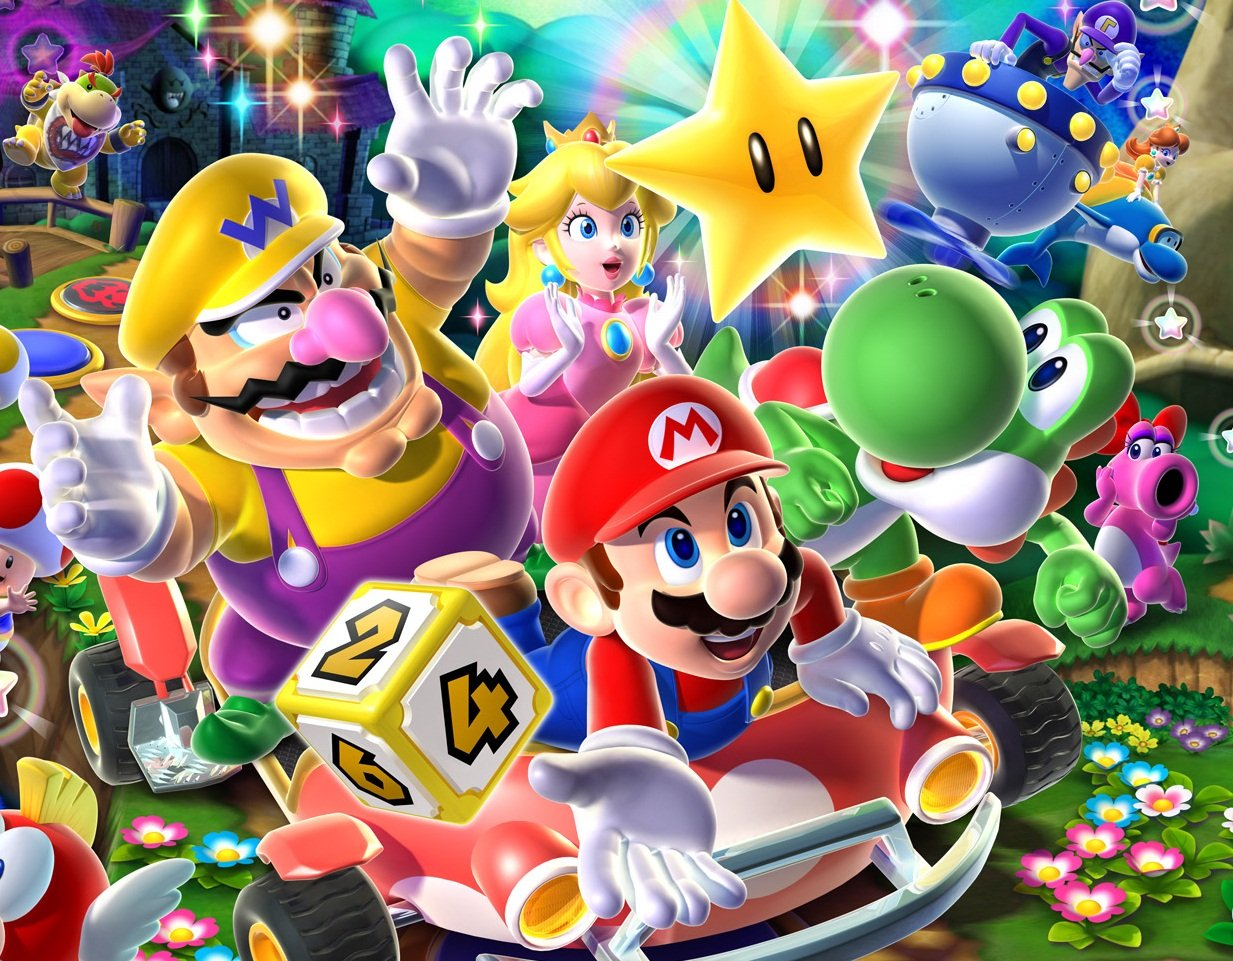 mario party longform story drama nintendo